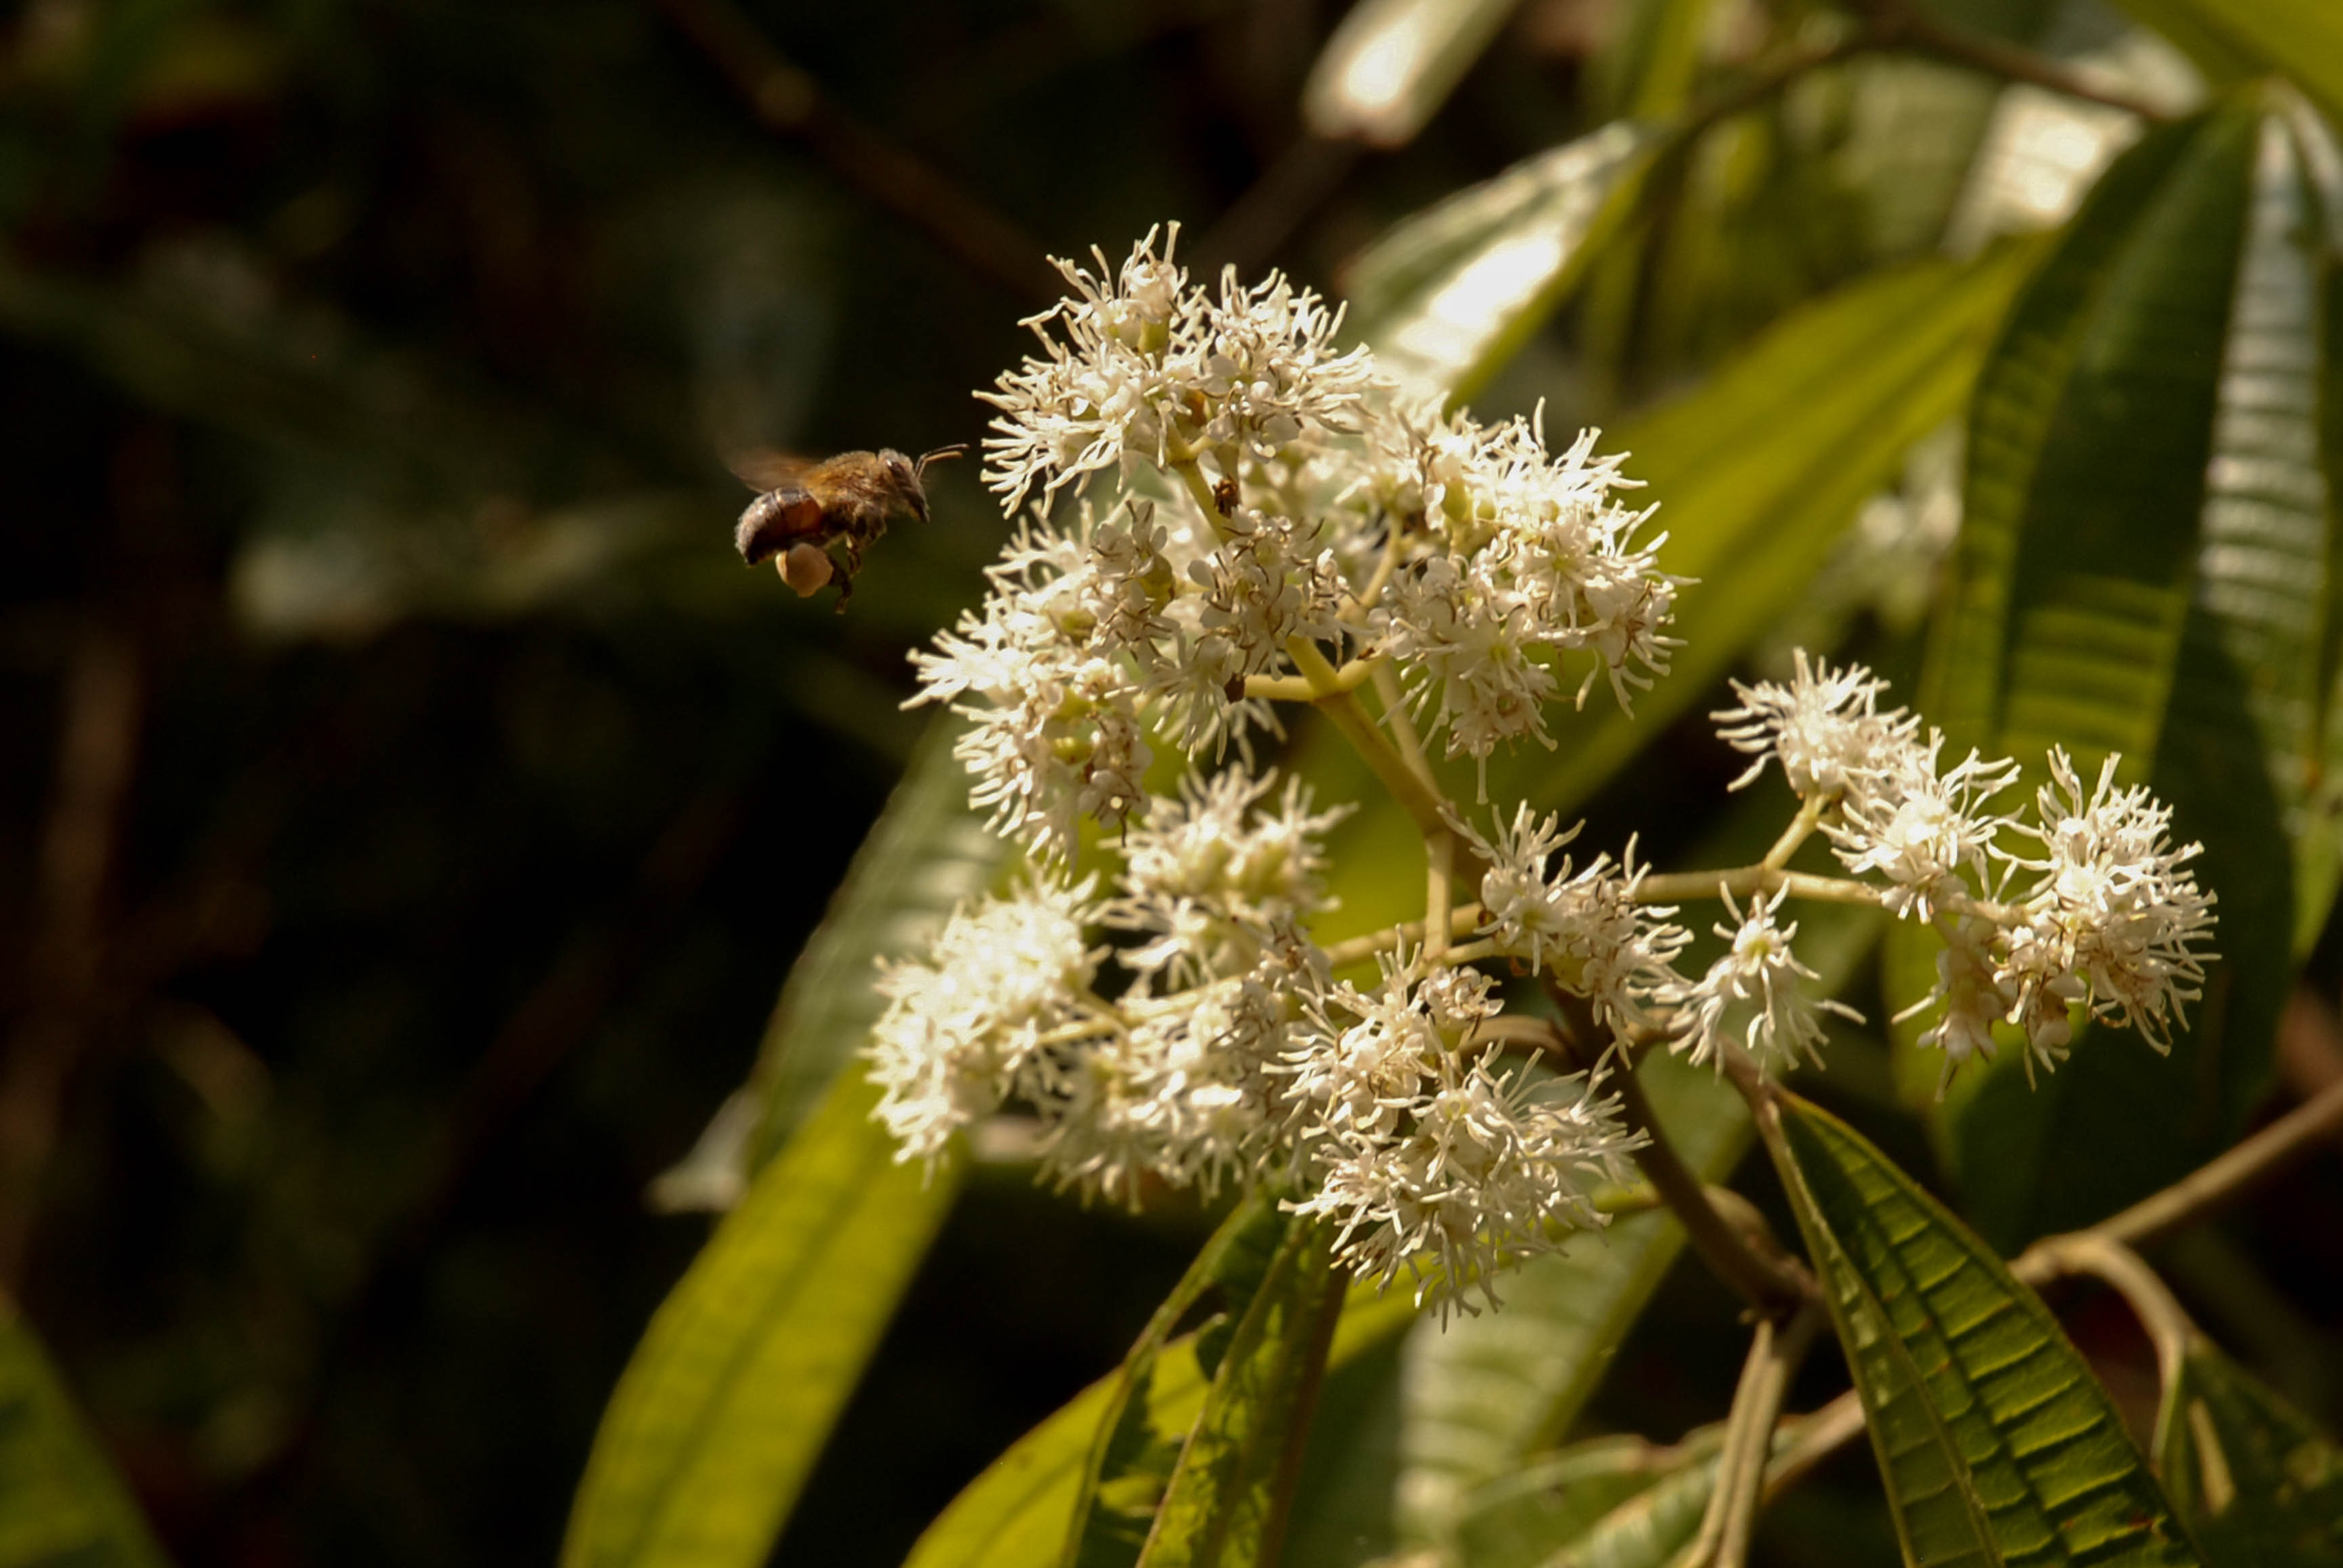 Scientists have discovered that tiny pollinating bees play matchmaker for trees across long distances and help promote genetic diversity.